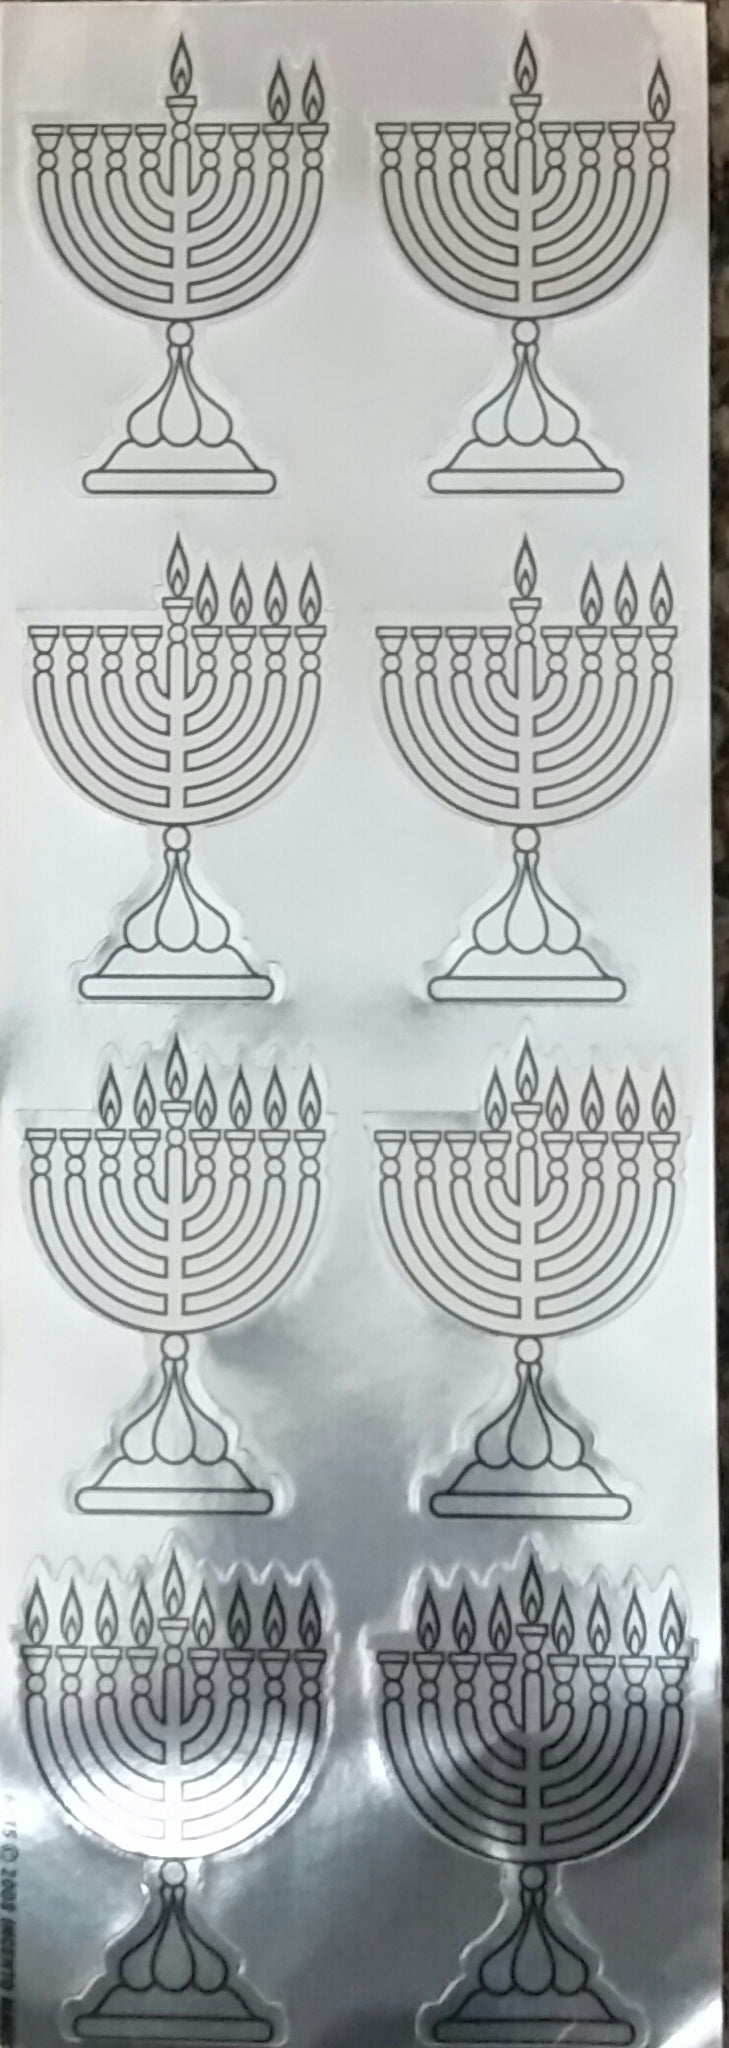 #6035S -  Menorah Die Cut Stickers - Silver